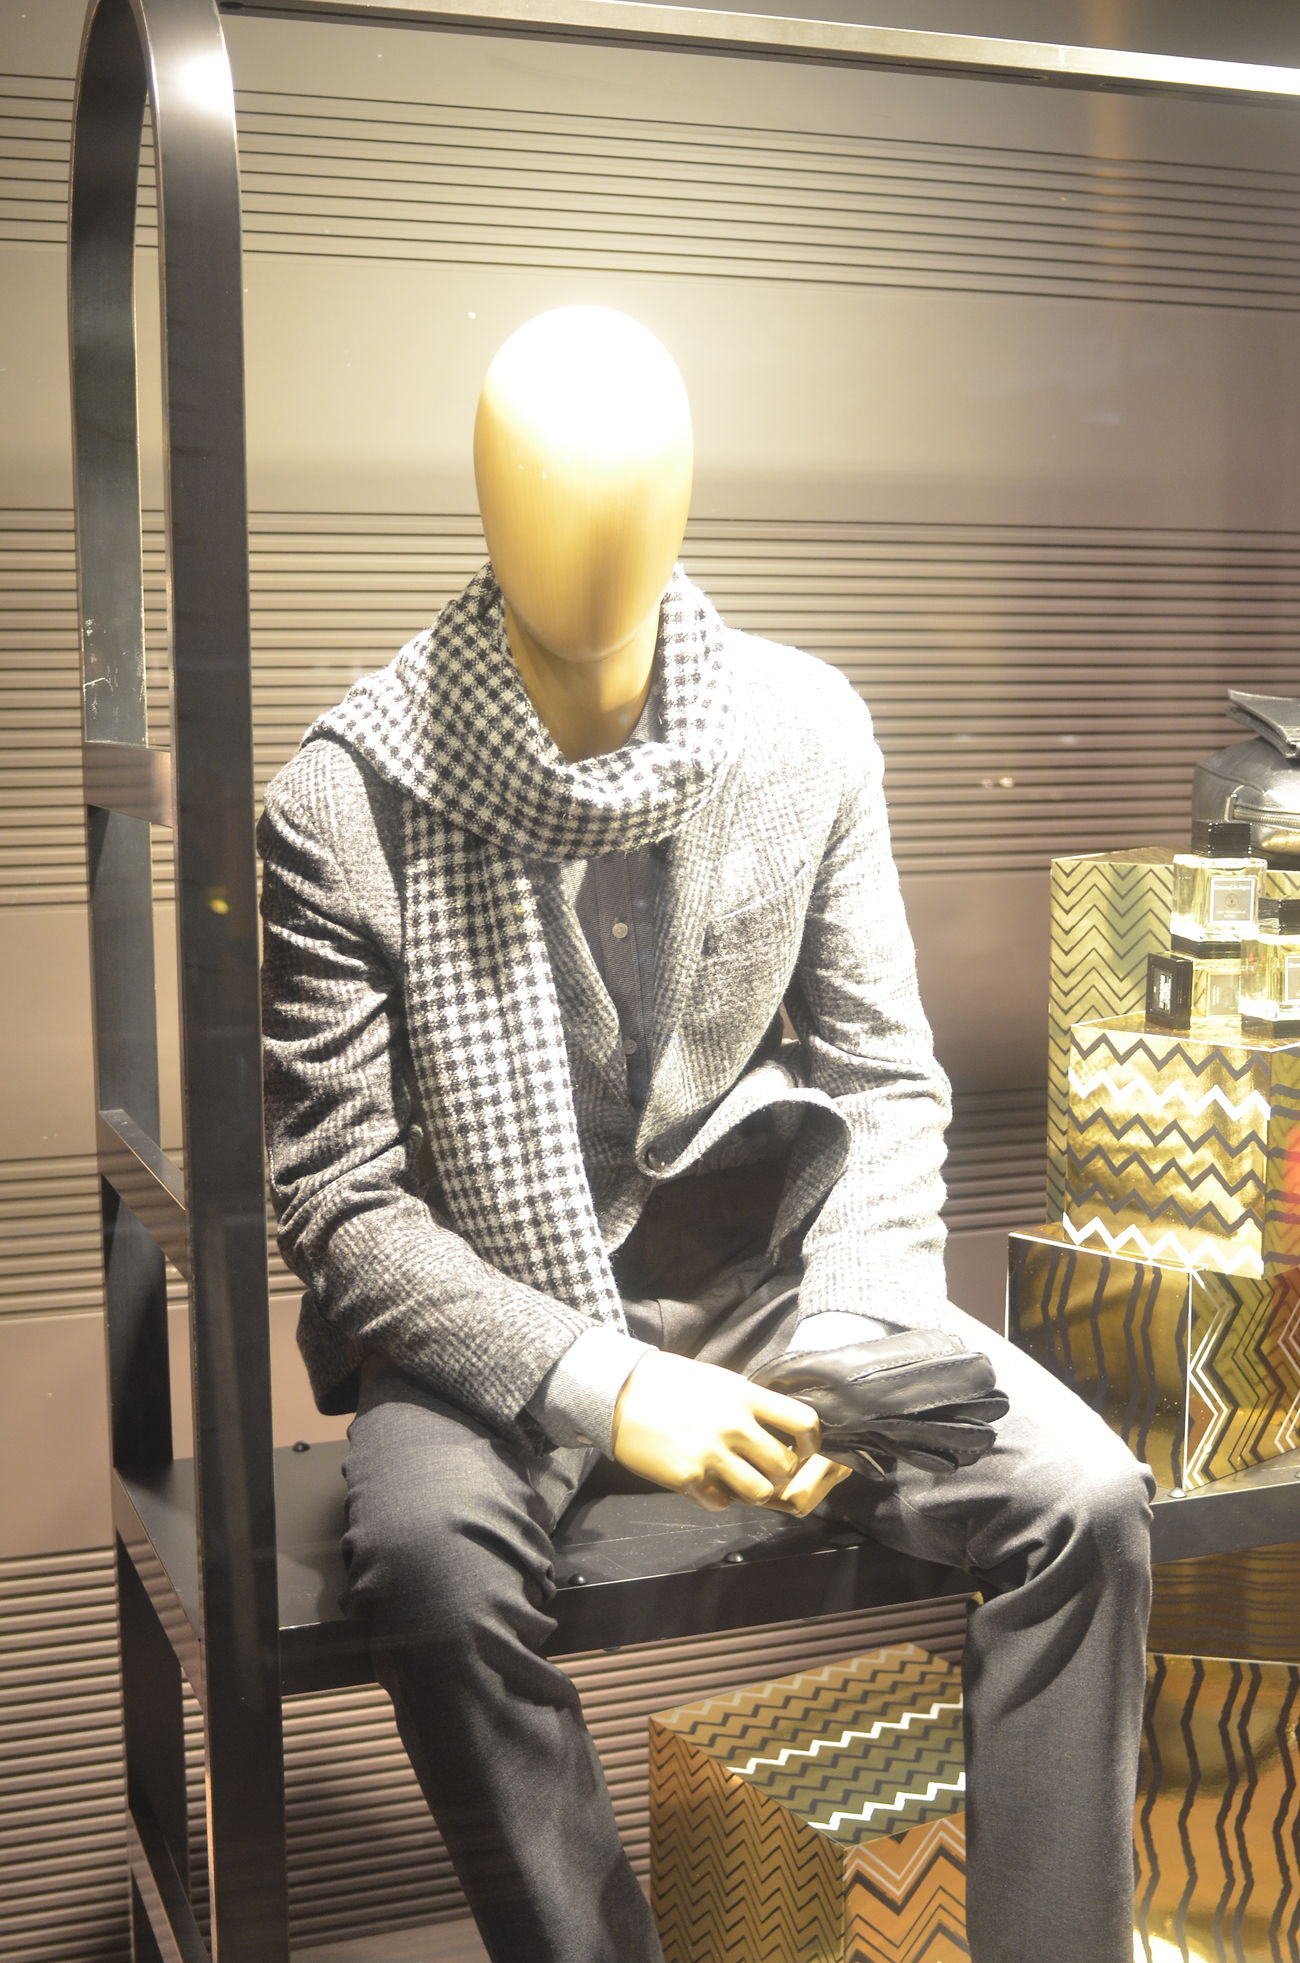 Mannequin Dummy Mensfashion Illuminated Displayed Window Display Window Display Photography Night Street Walking Around Taking Photos From My Point Of View Winter Fashion Cool Guy Adult Fashion Marunouchi